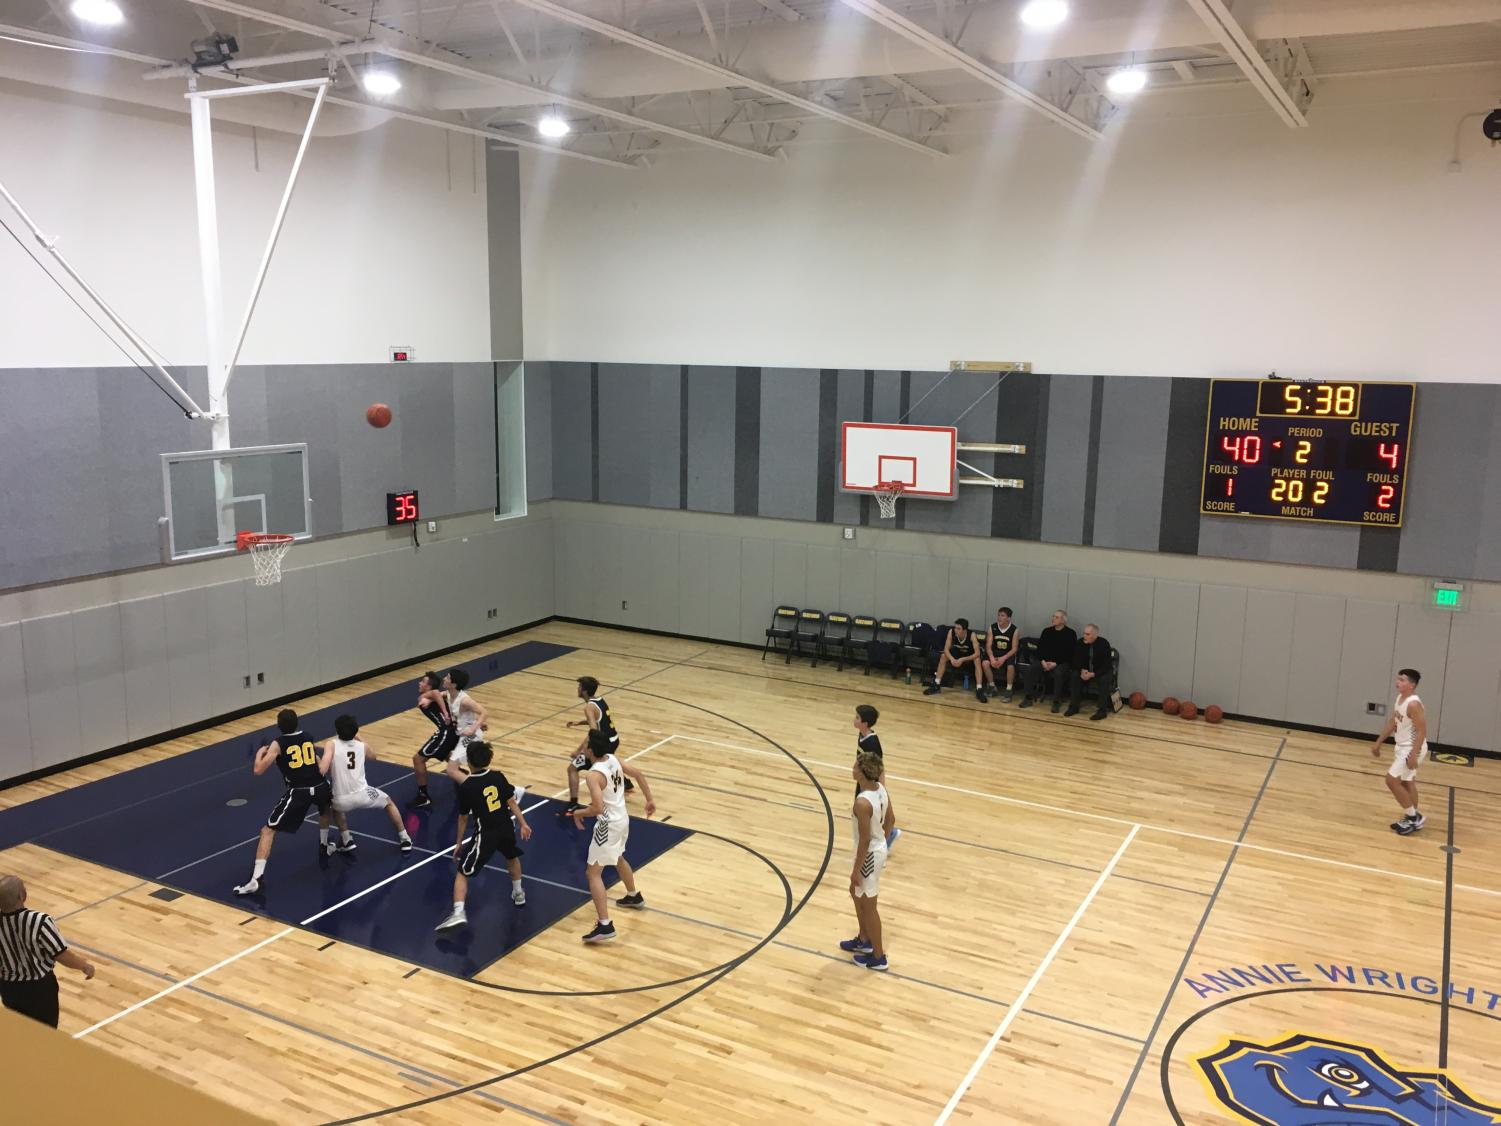 Both Upper School basketball teams have been practicing in the new gym since its opening in December.